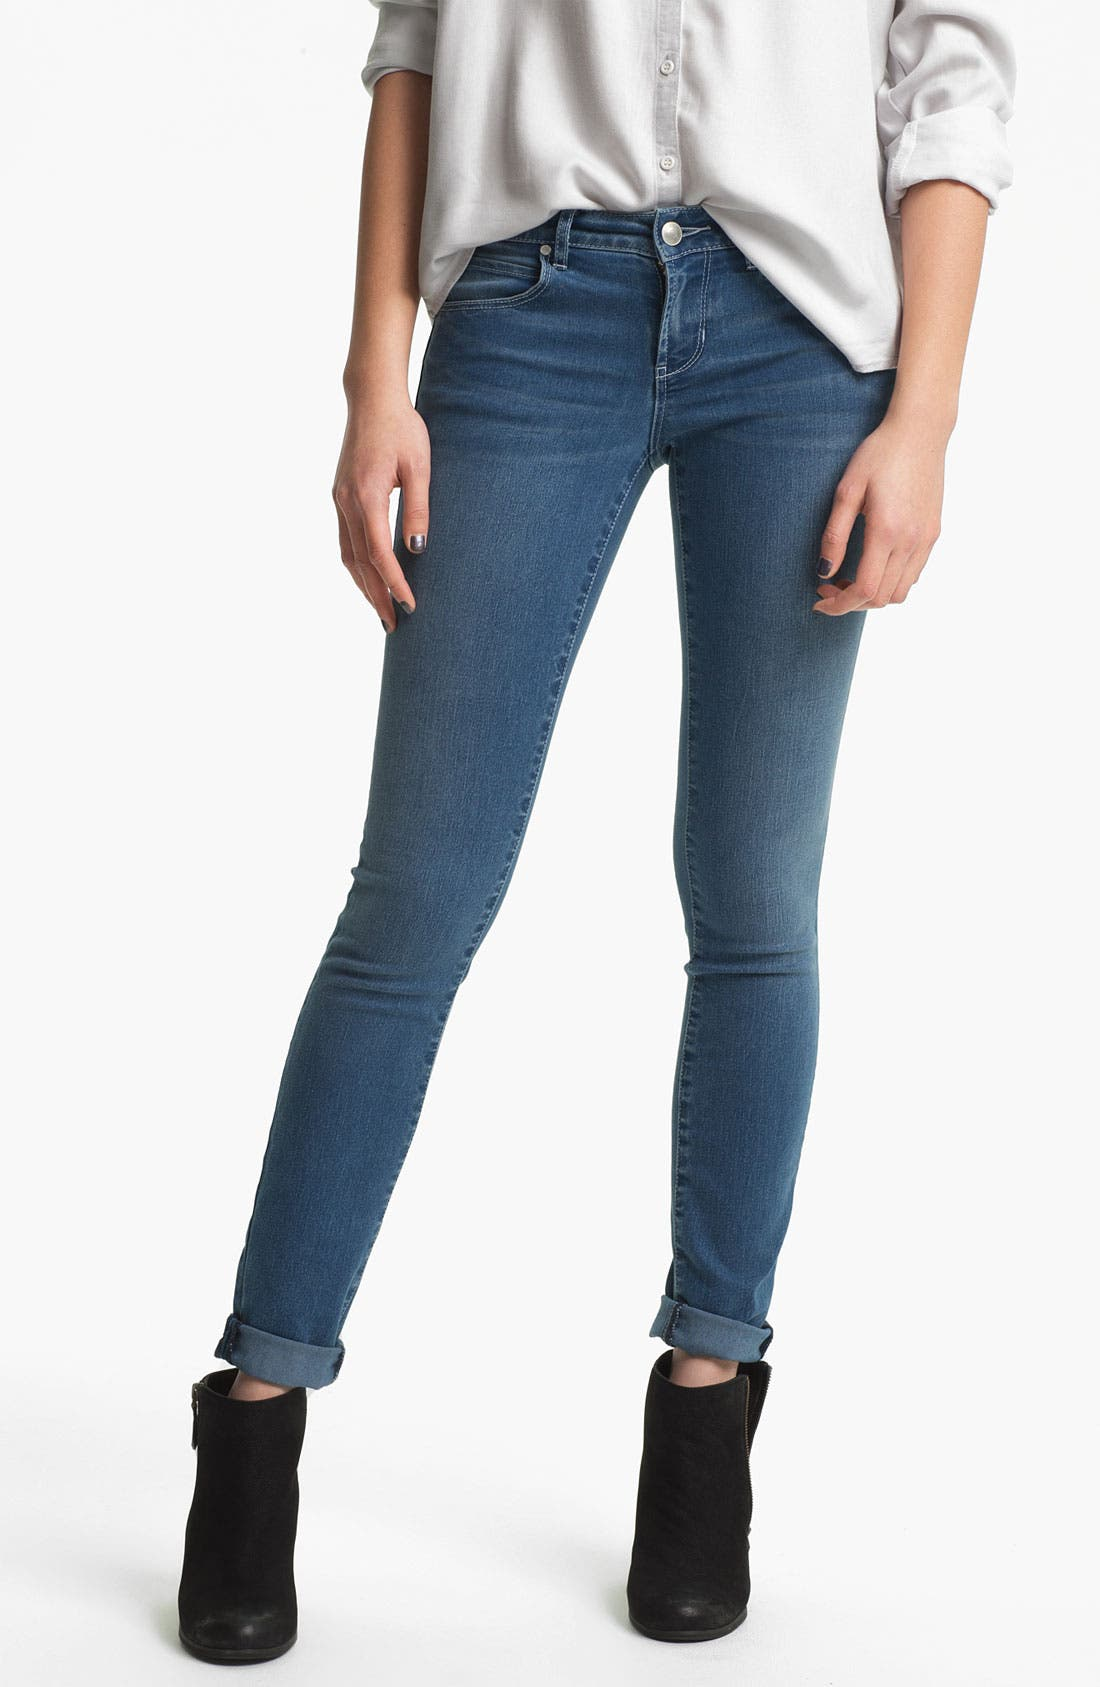 Main Image - Articles of Society 'Mya' Skinny Jeans (Atlantic) (Juniors)